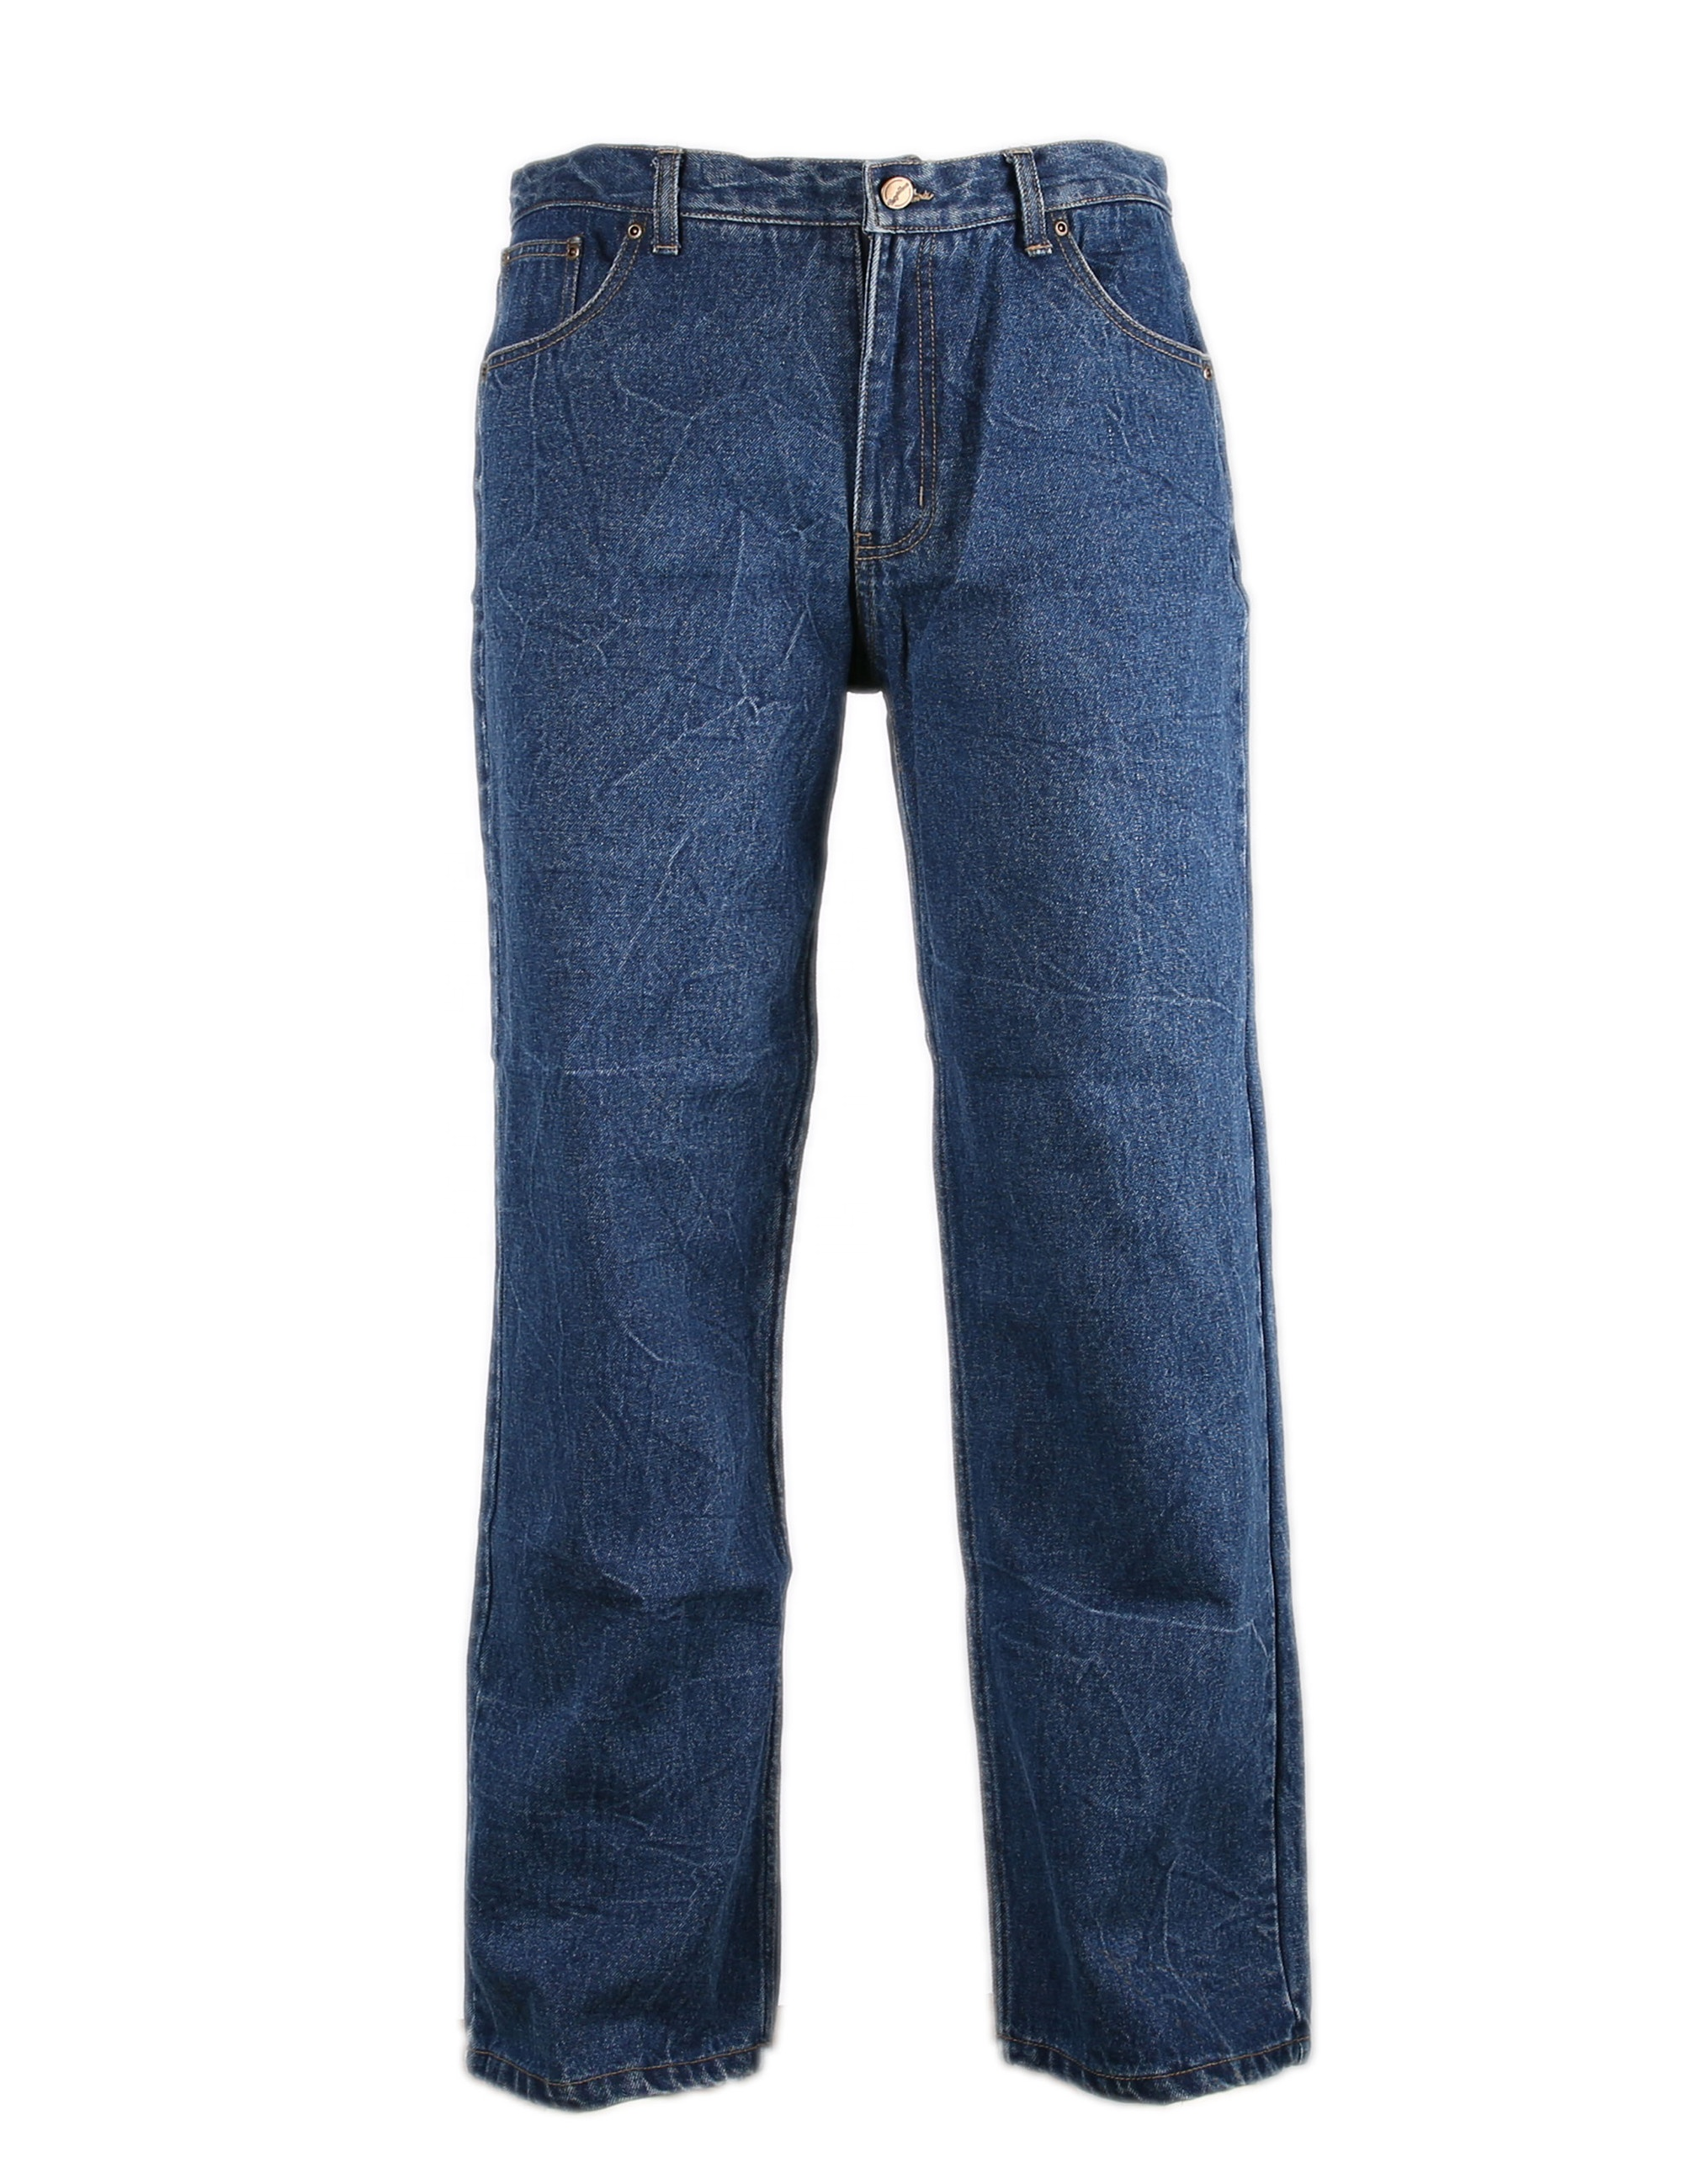 OEM Flame Retardant 100%cotton Jeans pants workwear